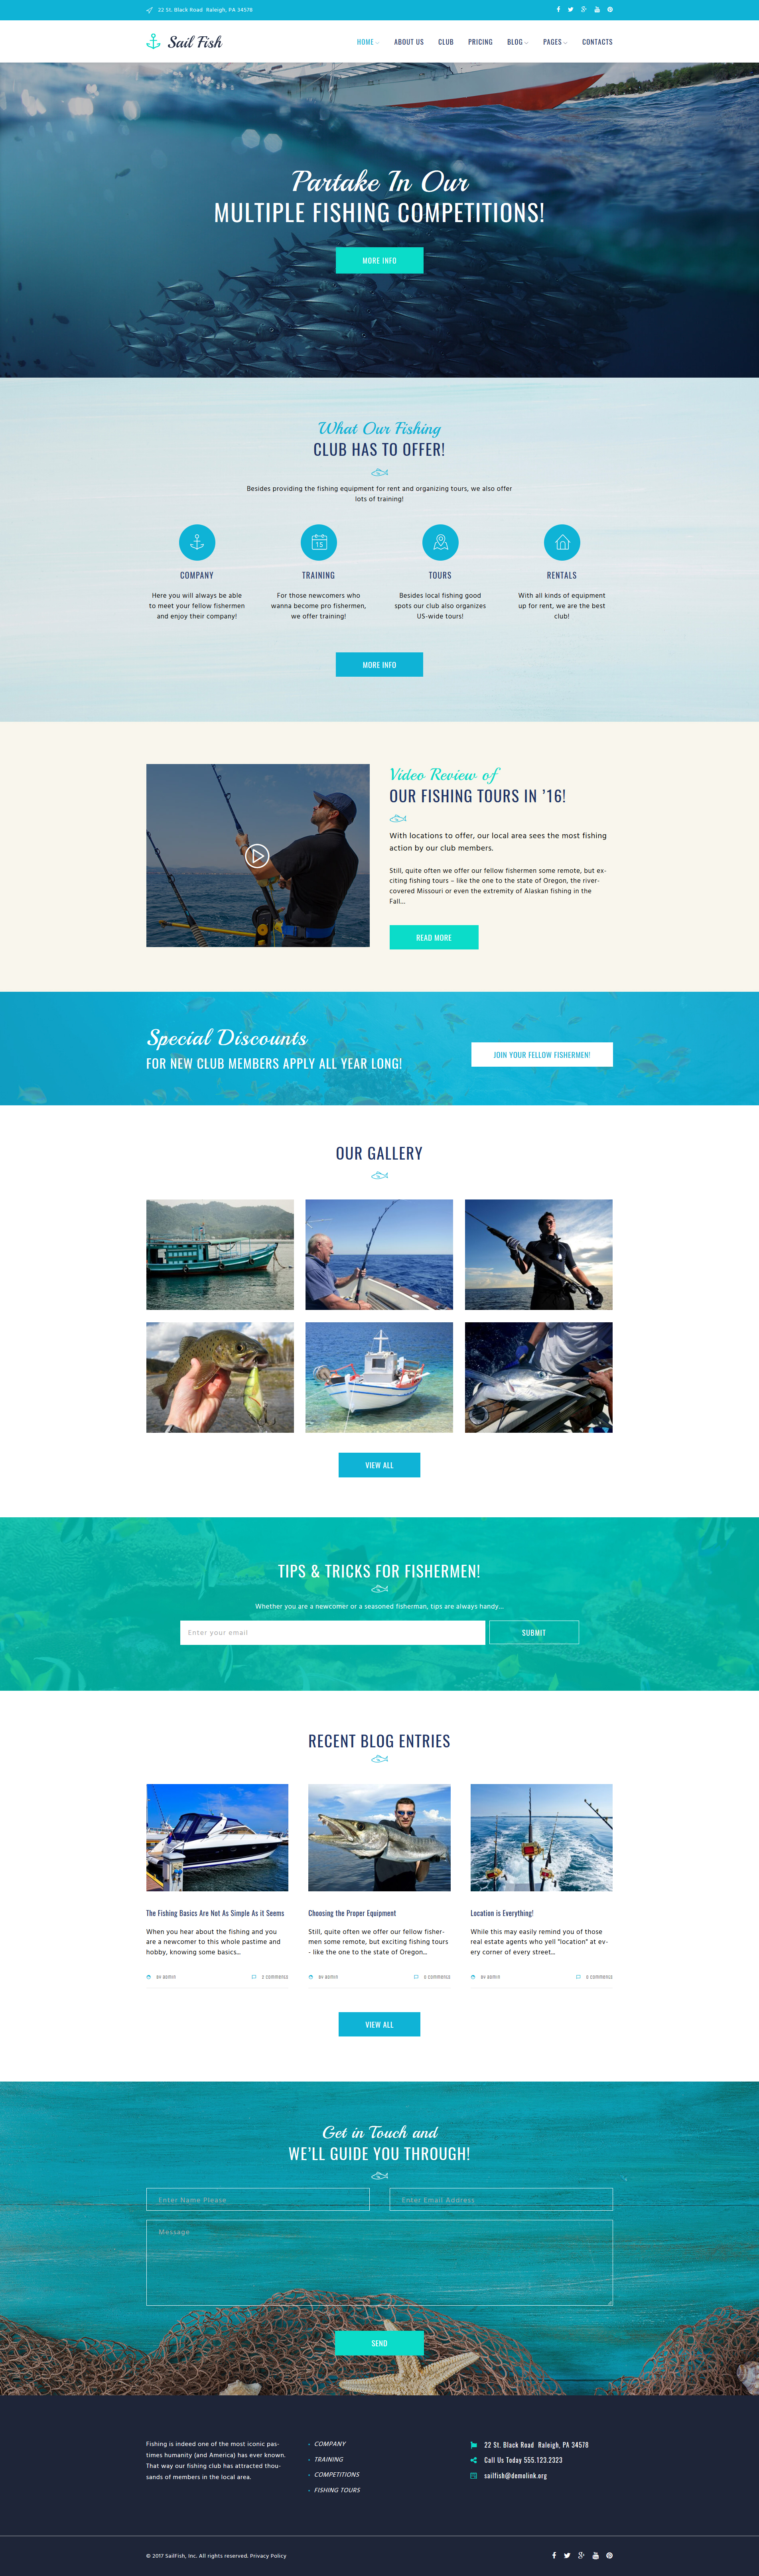 Sail Fish - Fishing Club Responsive WordPress Theme - screenshot